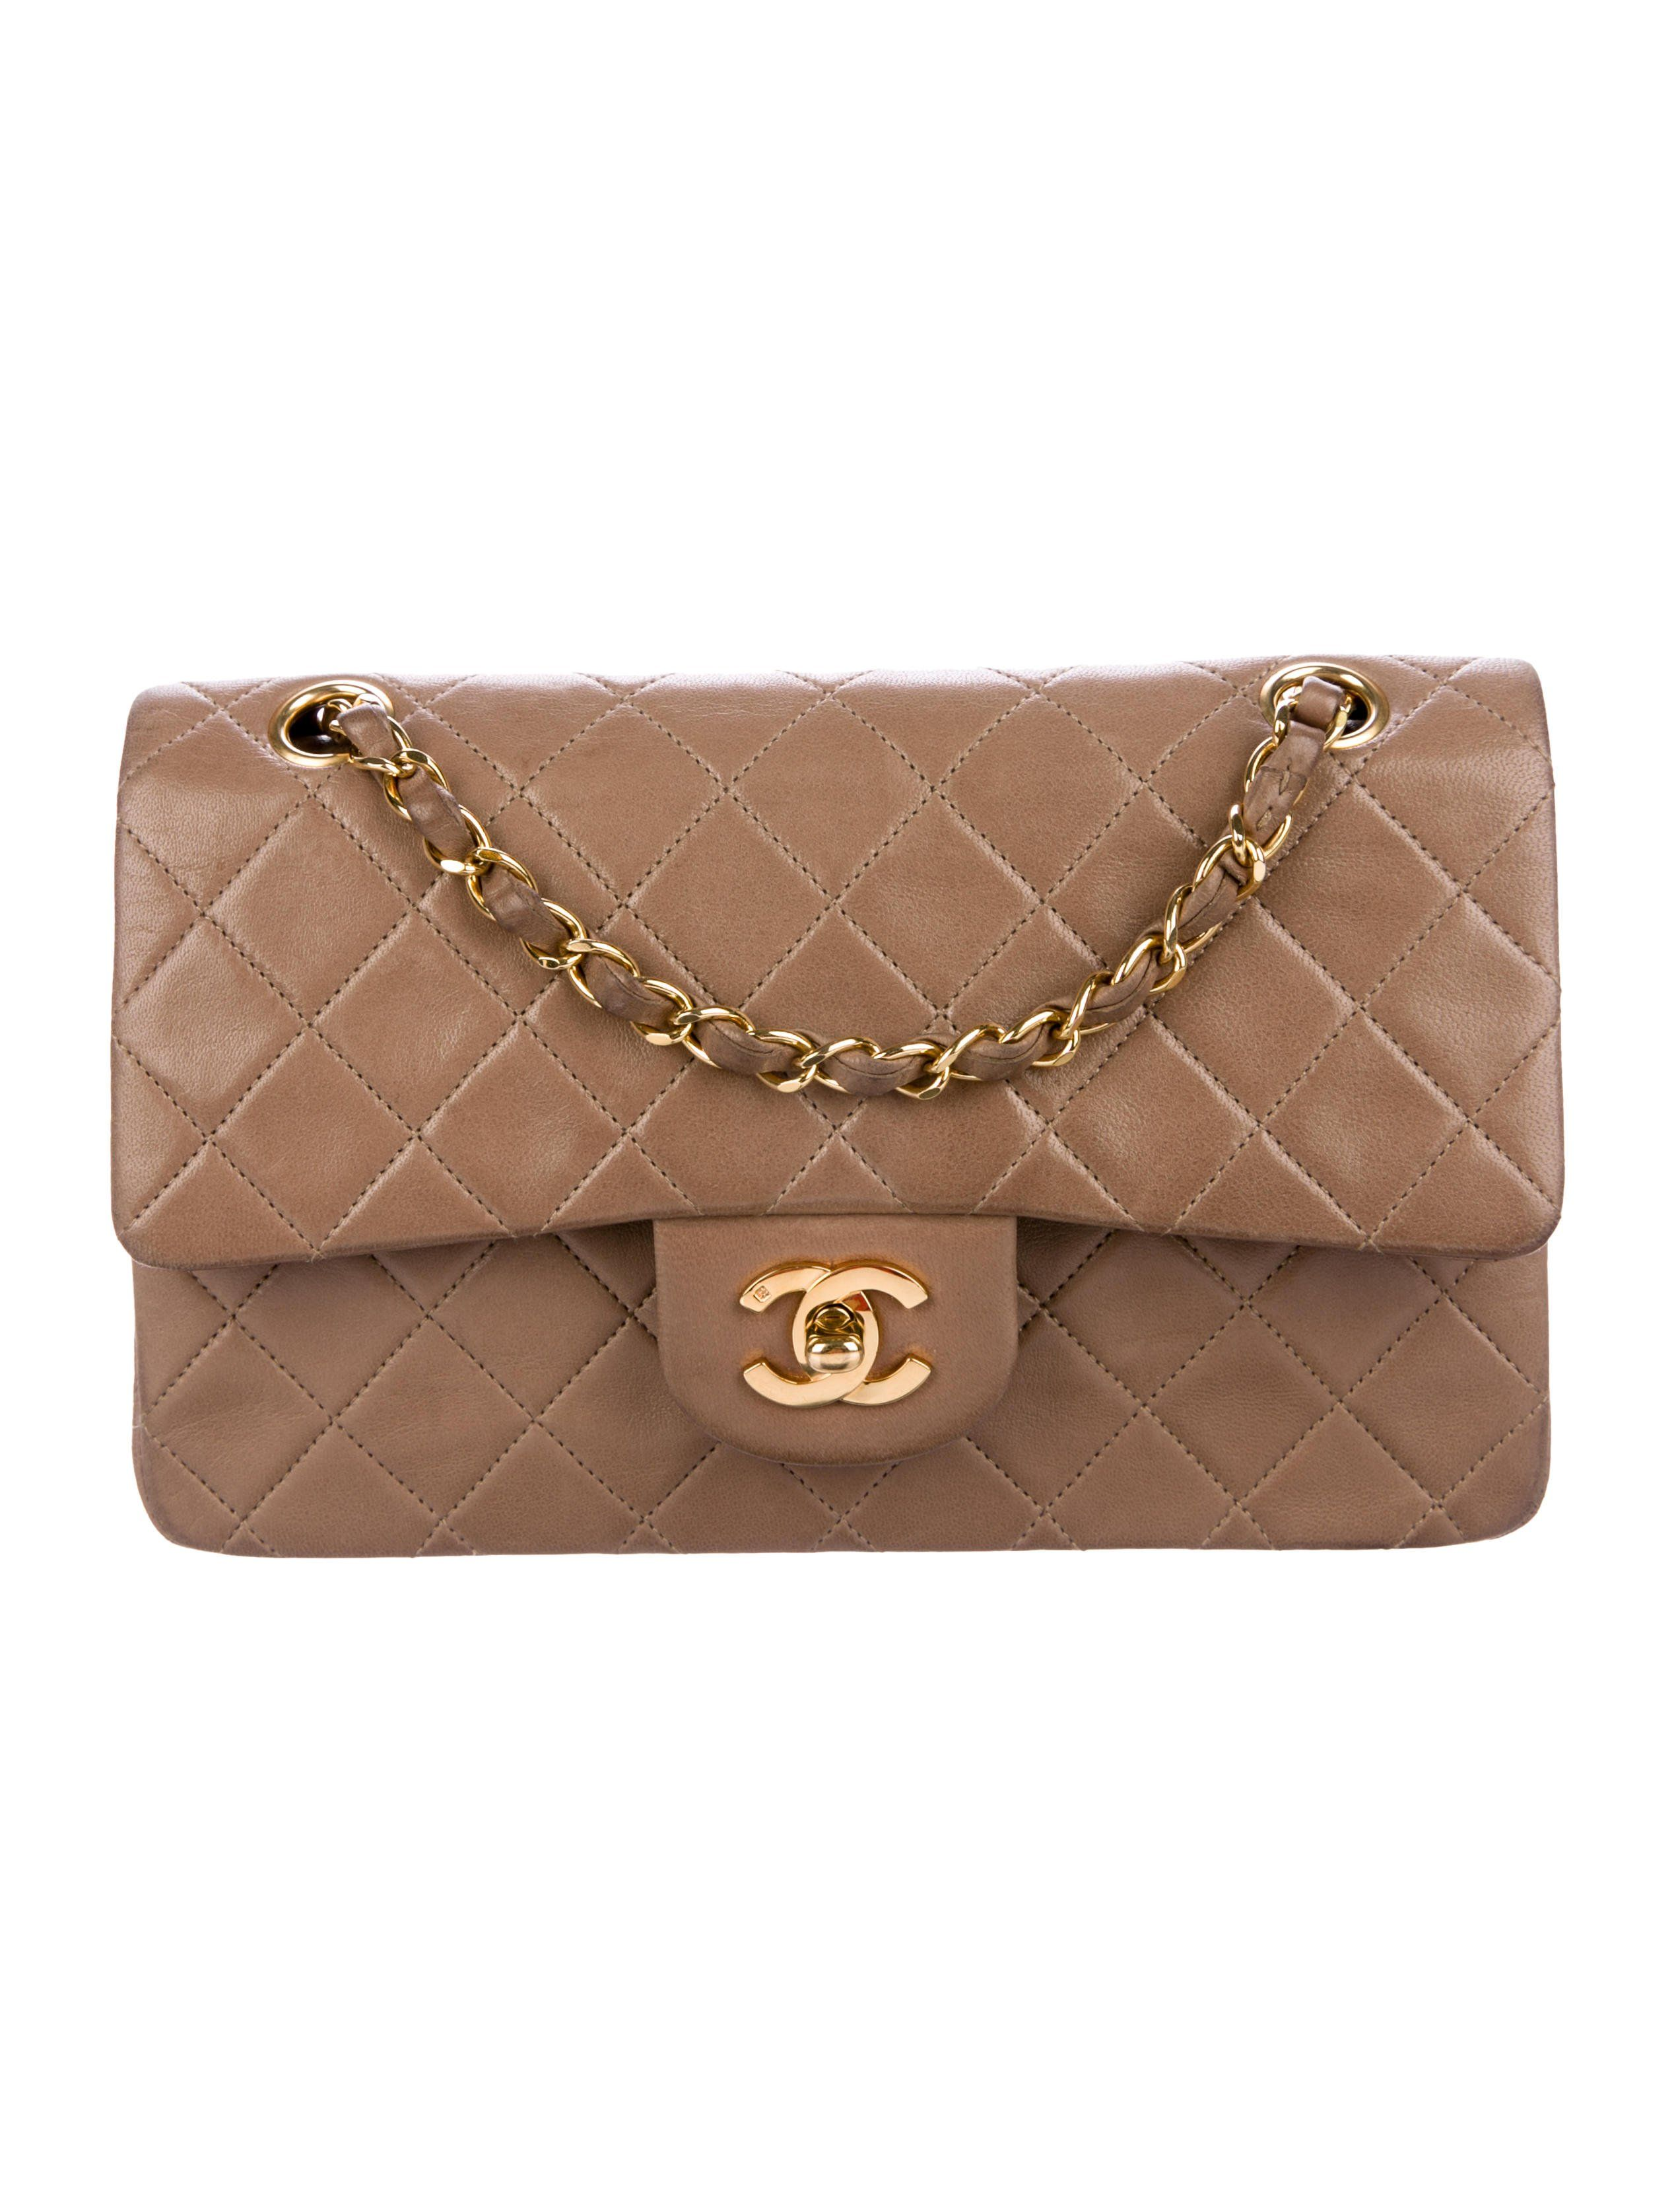 Brown Quilted Lambskin Leather Vintage Chanel Classic Small Double Flap Bag With Gold Tone Hardware Convertible Chain Lin Flap Bag Chanel Handbags Double Flap